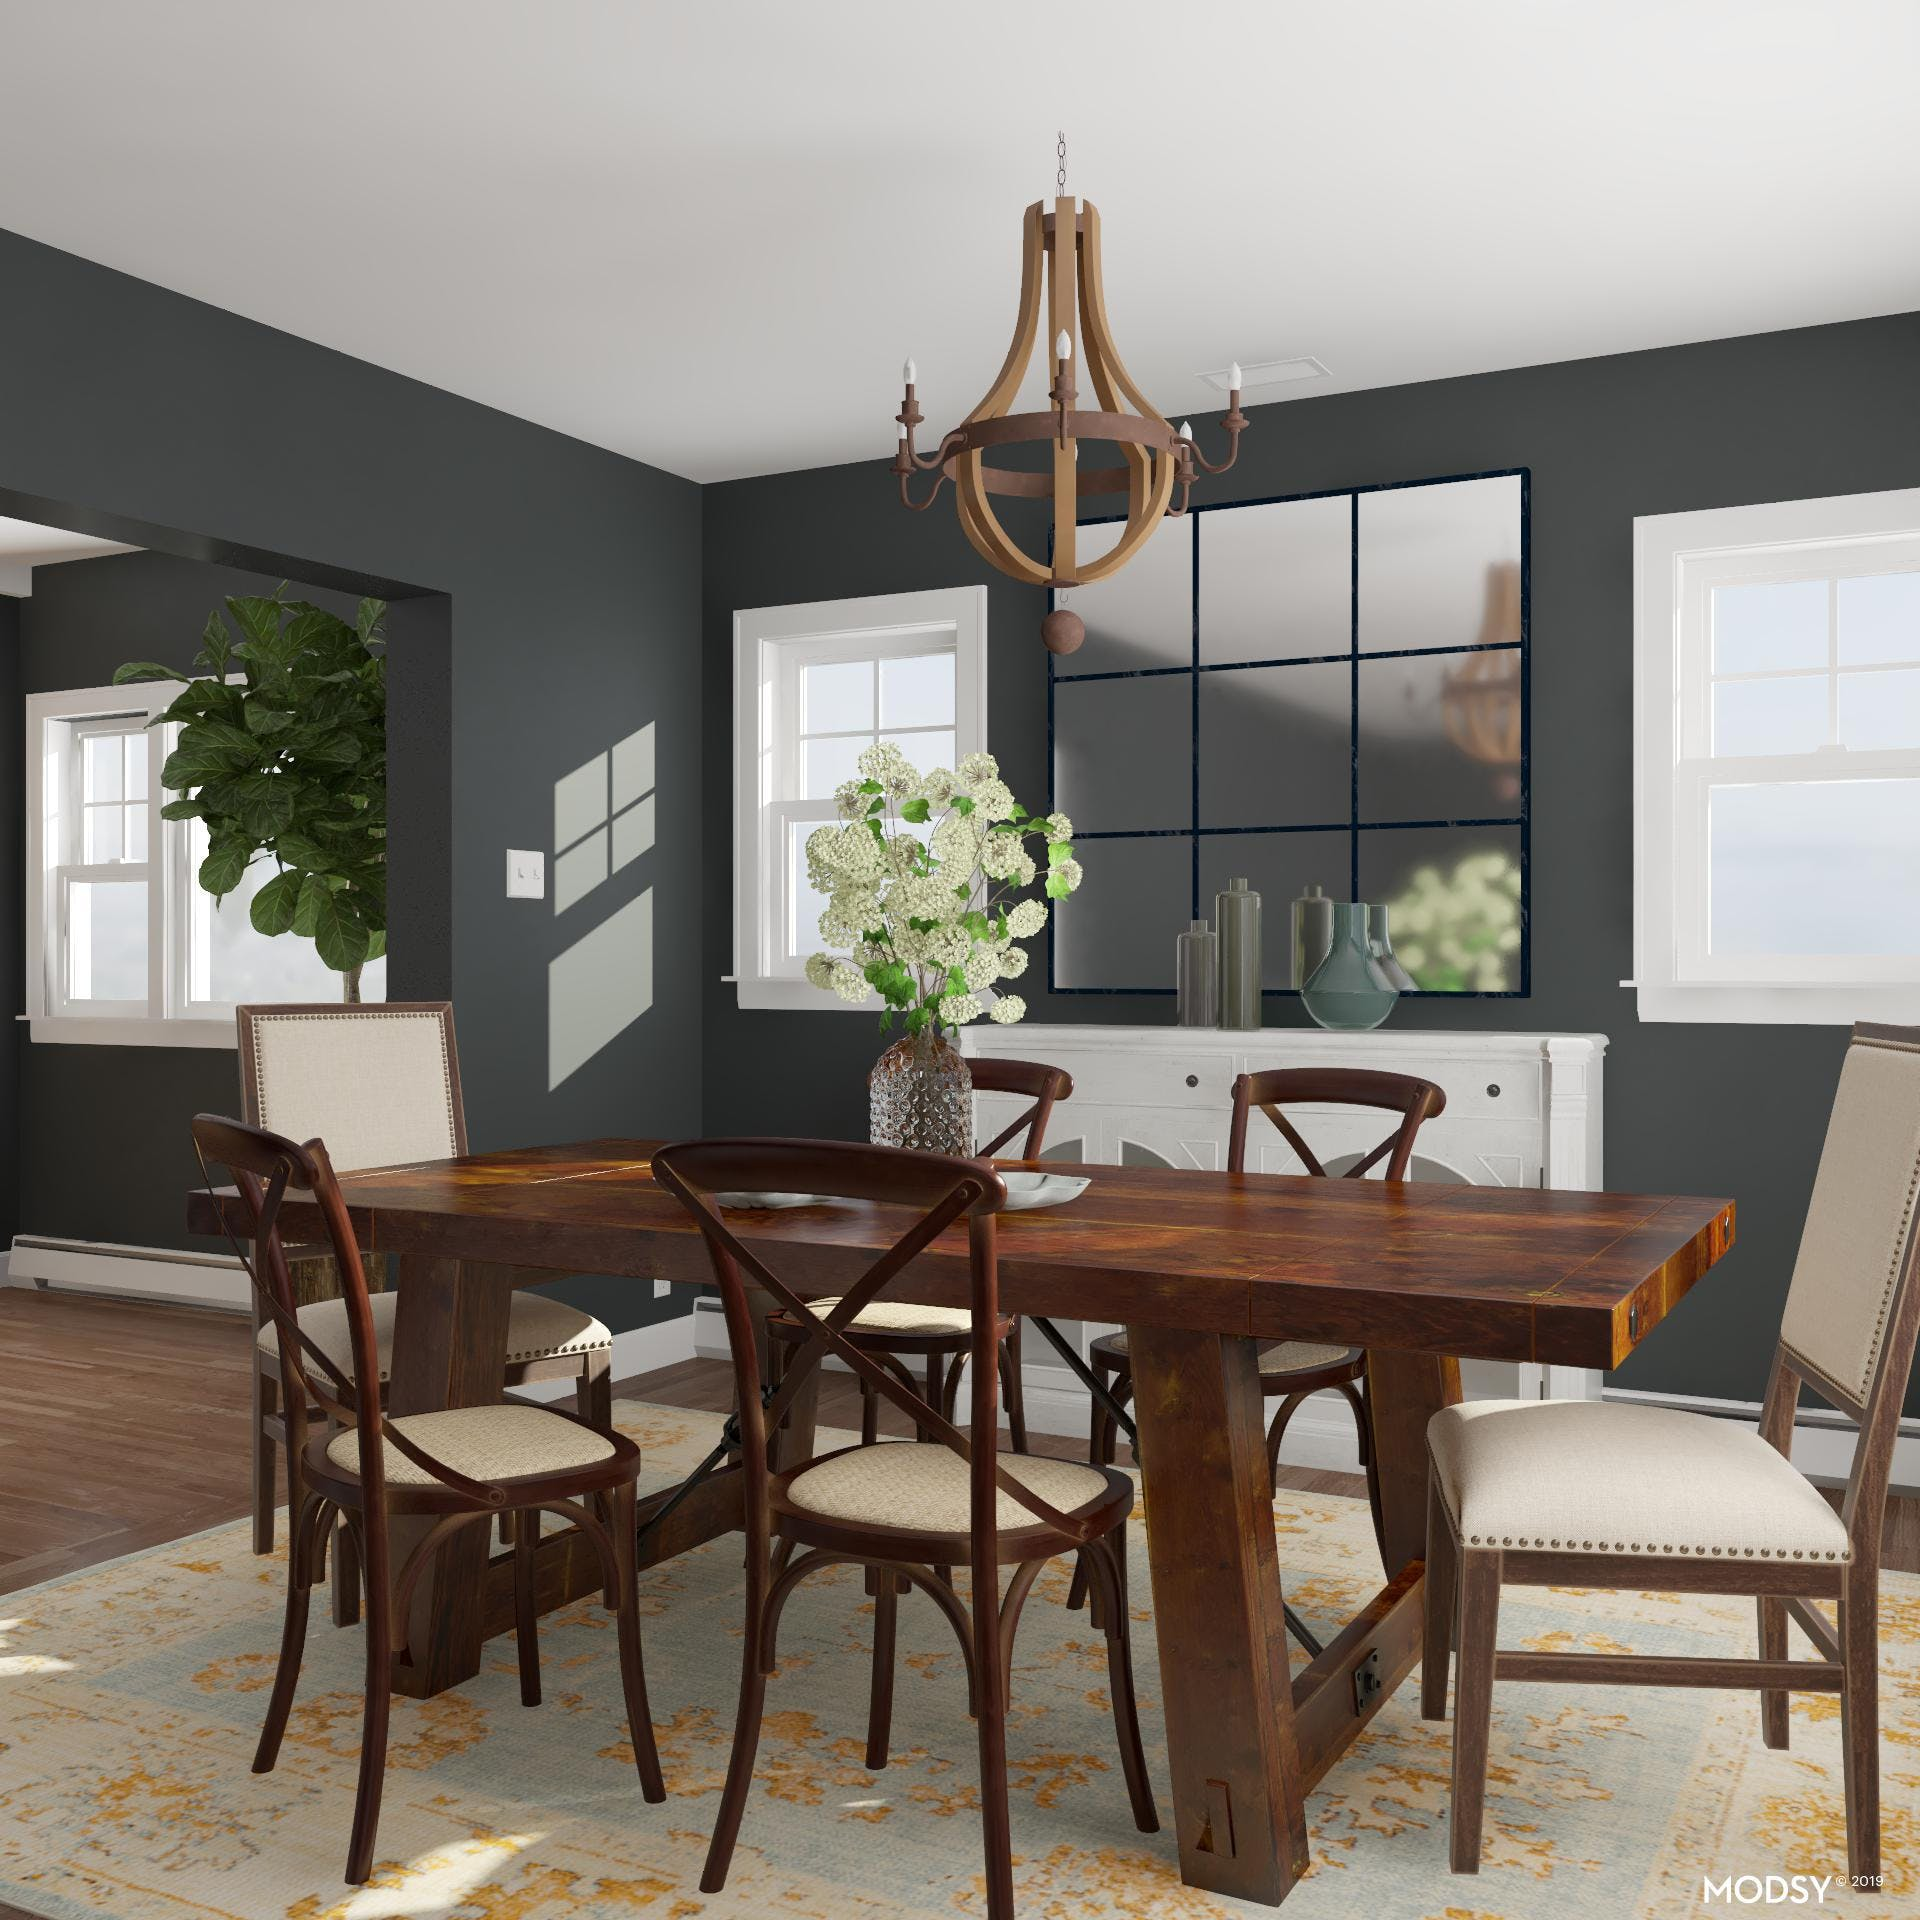 First Look Inside: Dining Rooms That Greet You